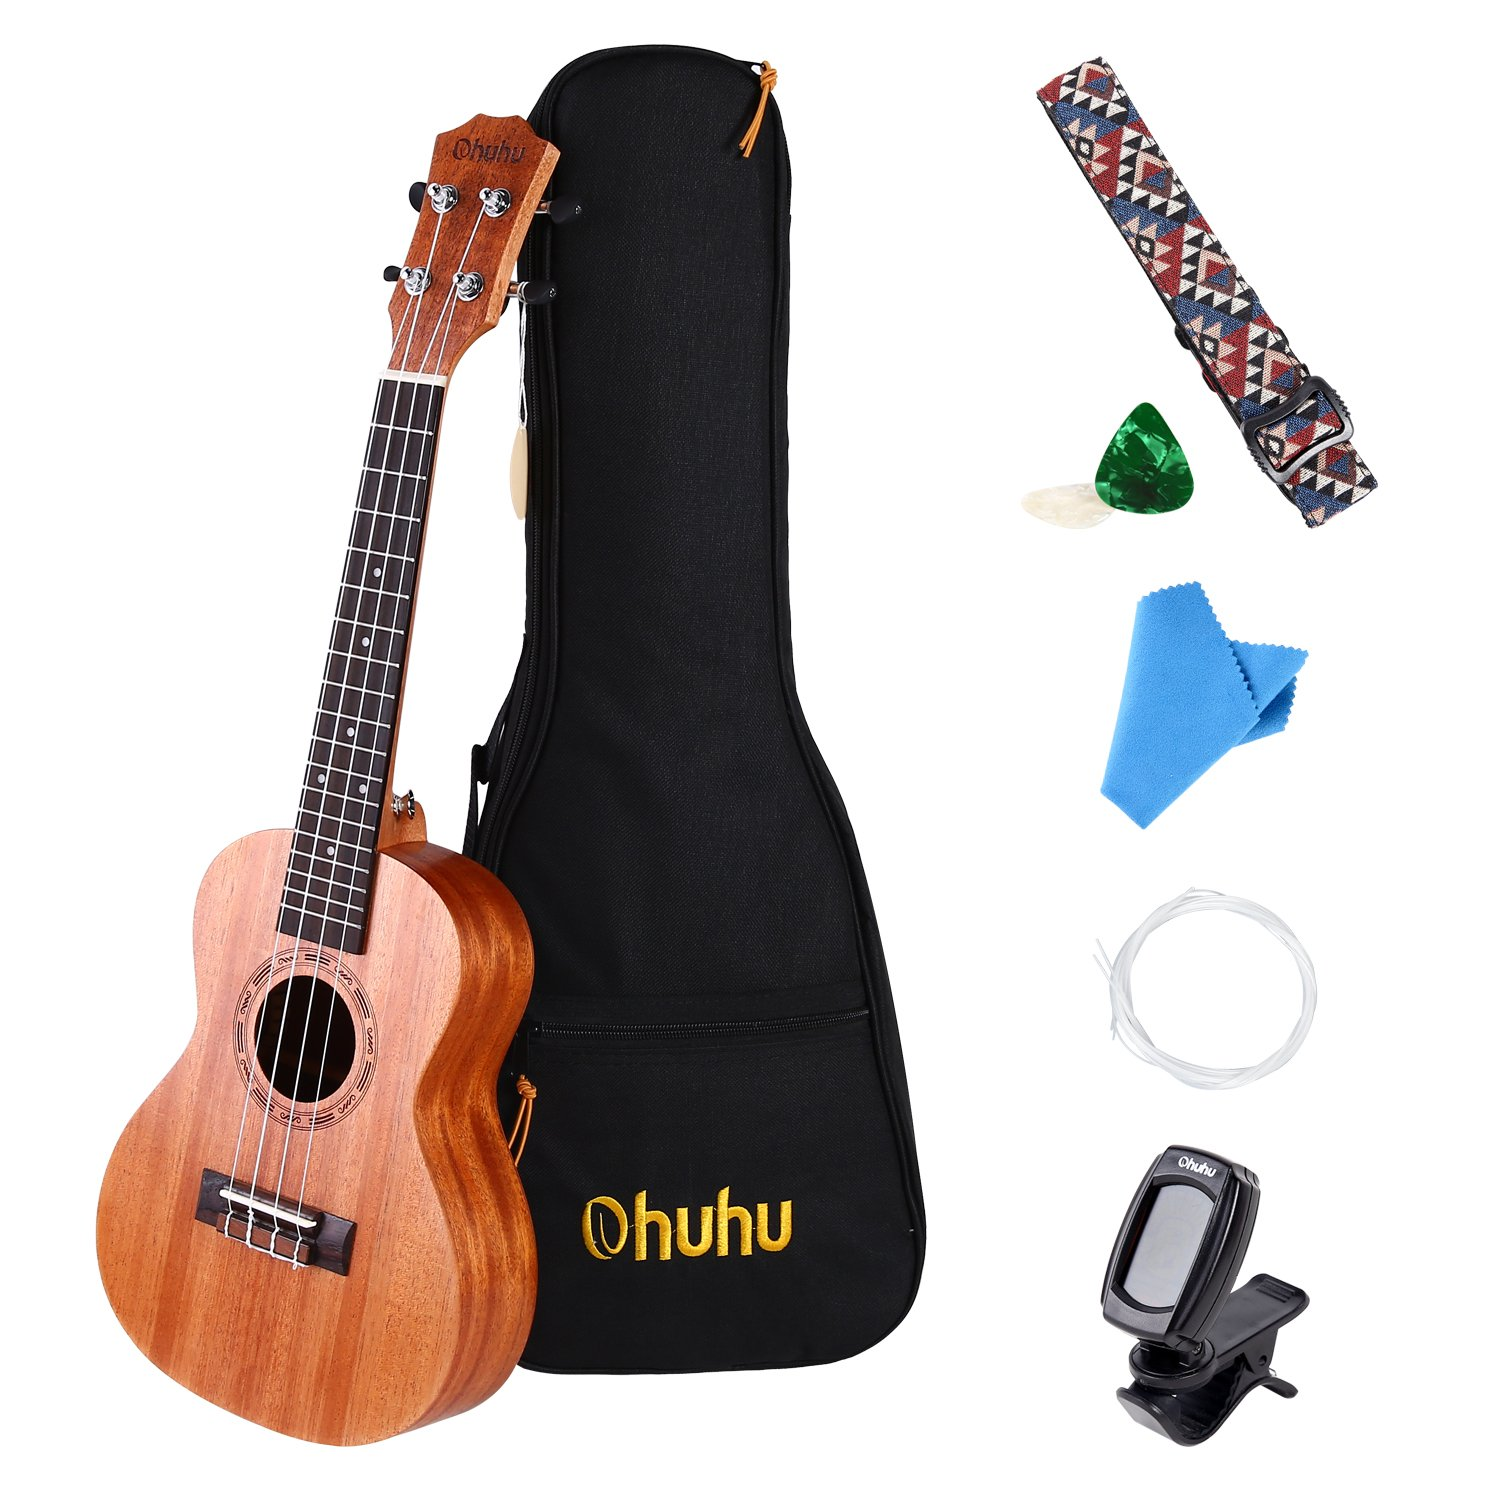 Concert Ukulele, Ohuhu 23 inch Mahogany Ukulele Concert Size Music Instruments for Uke Beginners, with Tuner, Ukulele Carrying Gig Bag, Ukulele Strap (Strap Pins Installed), Picks and Aquila Strings